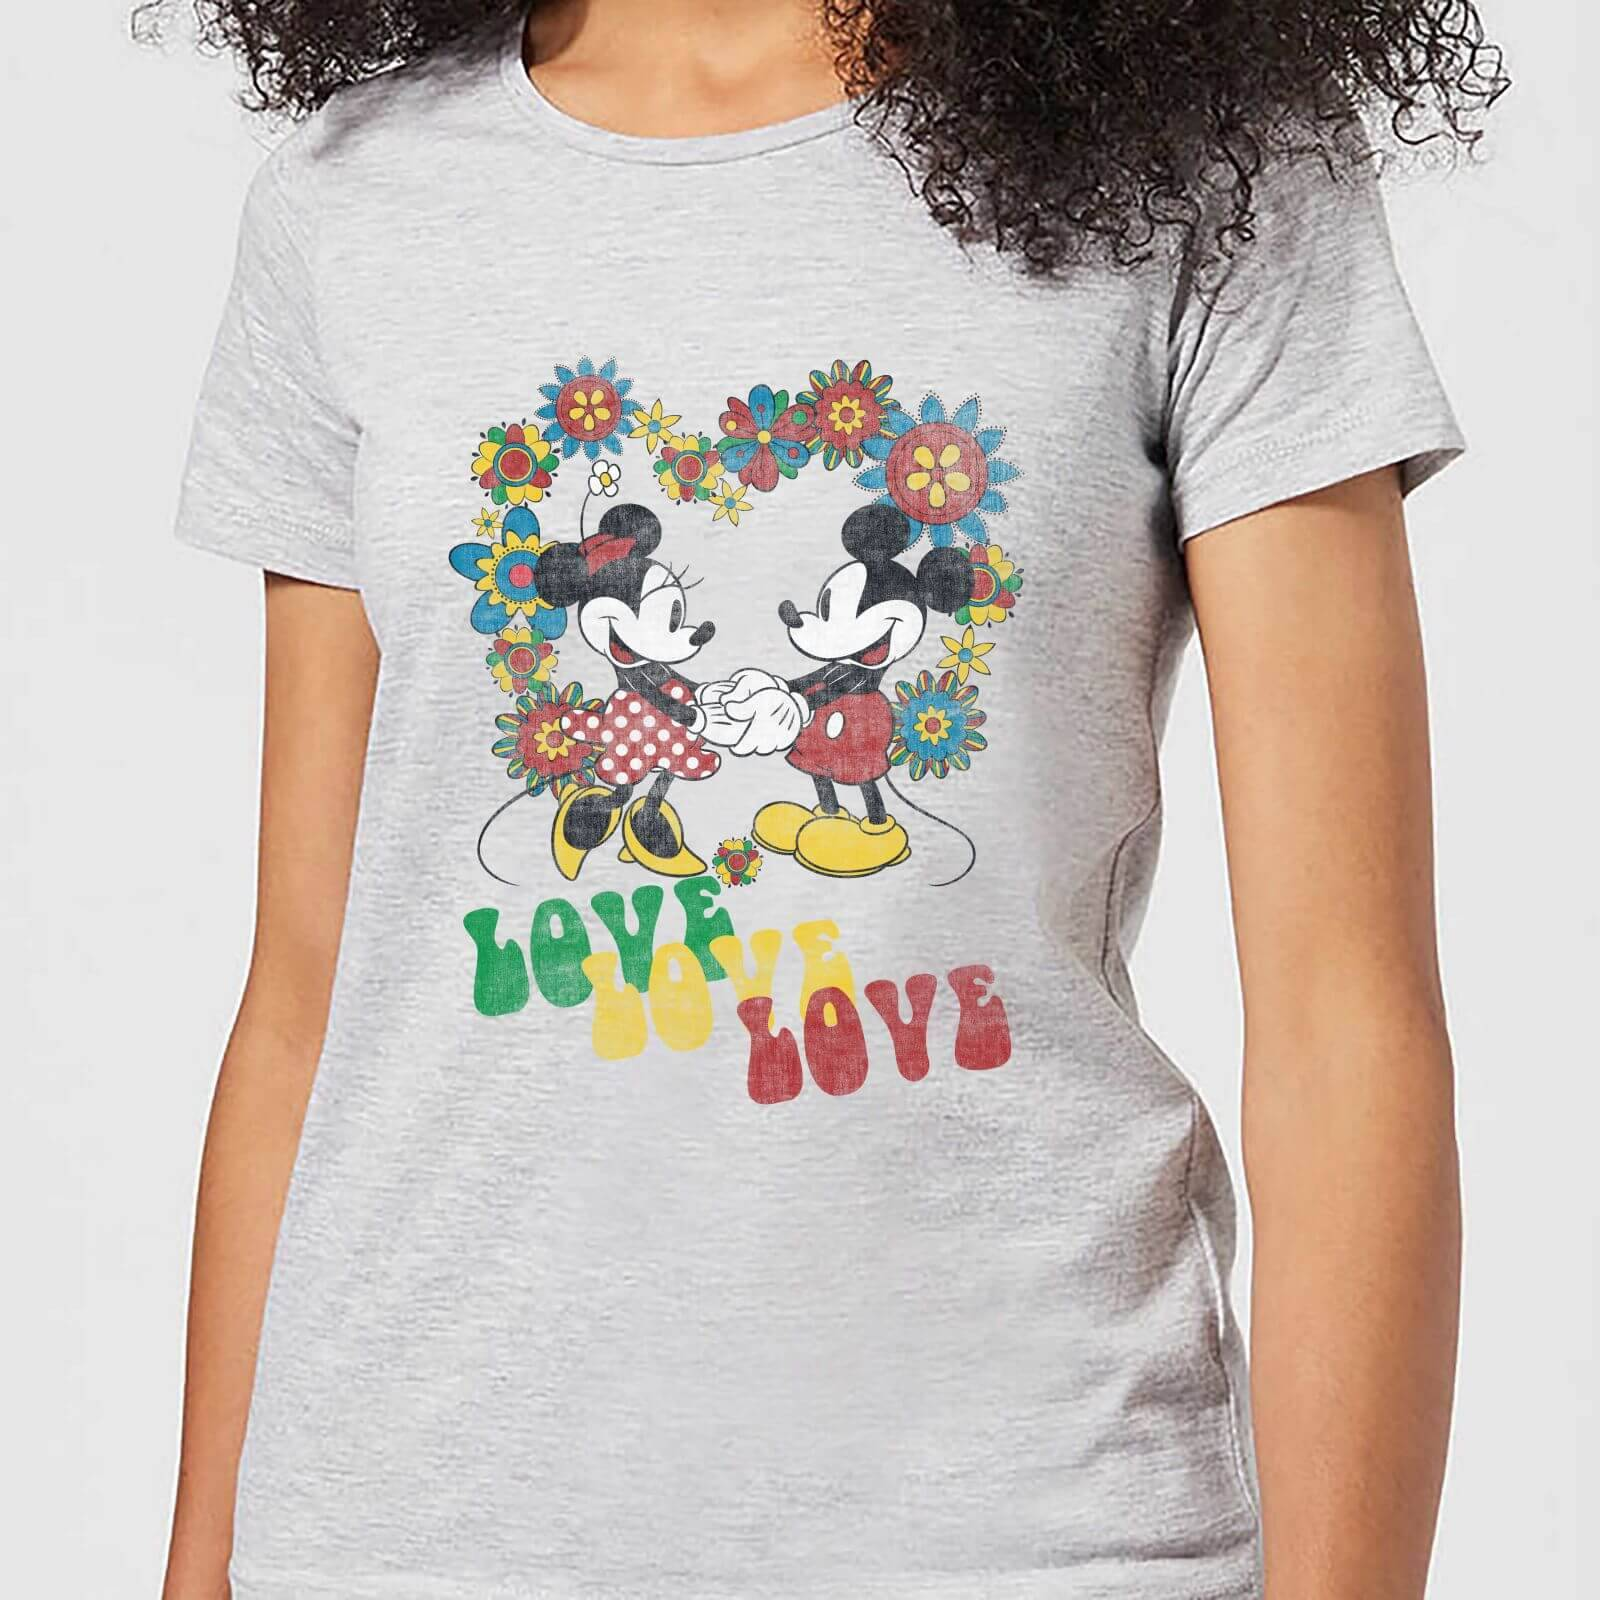 Disney Mickey Mouse Hippie Love Women's T-Shirt - Grey - 5XL - Grey